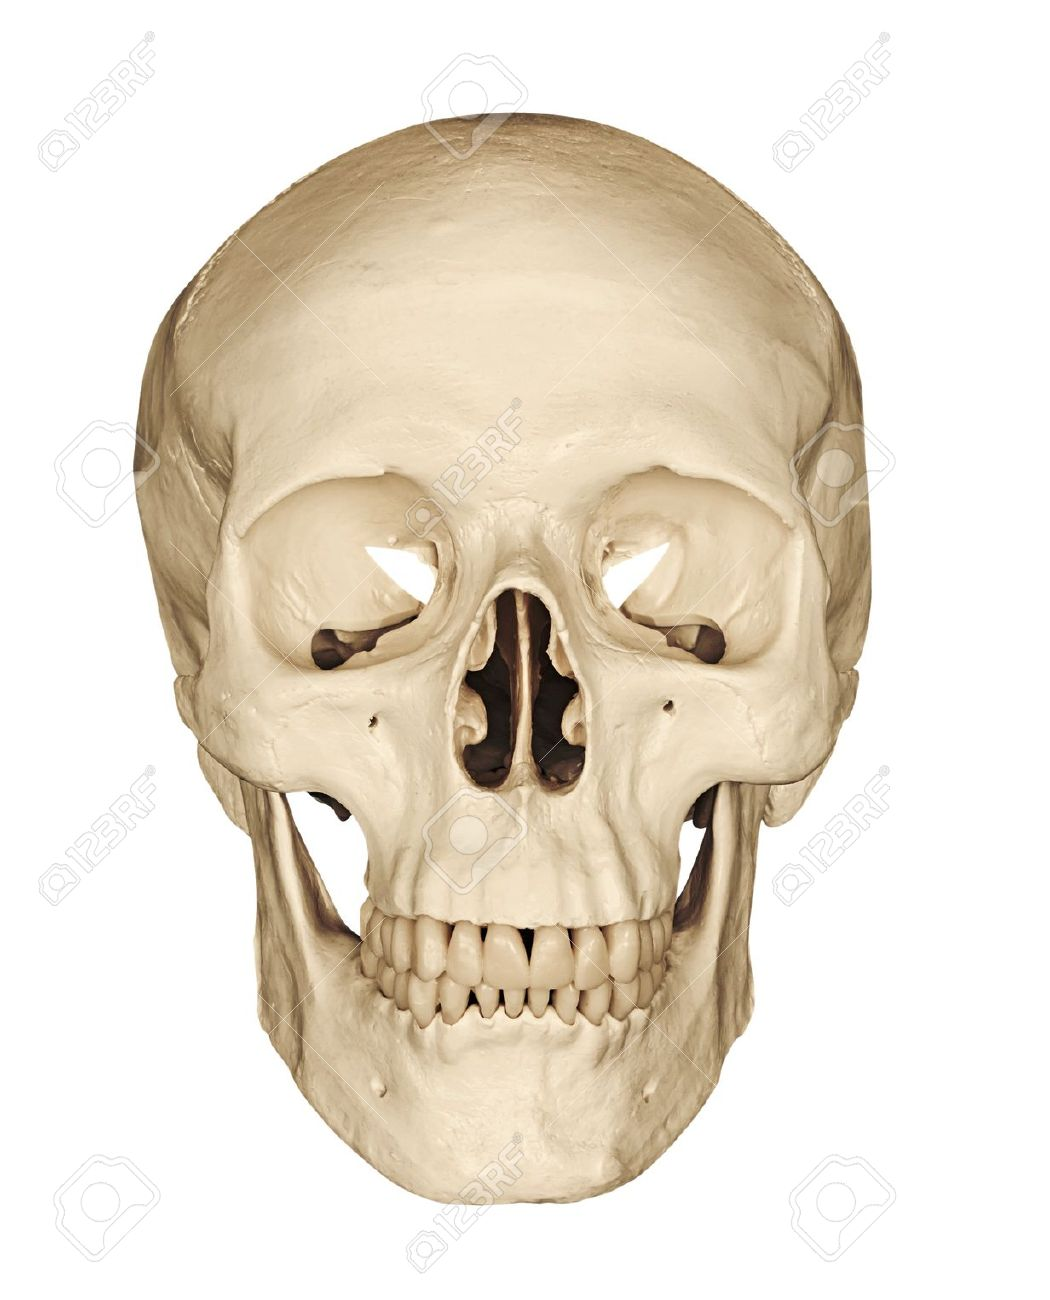 Medical Model Of A Human Skull Isolated Against A White Background ...